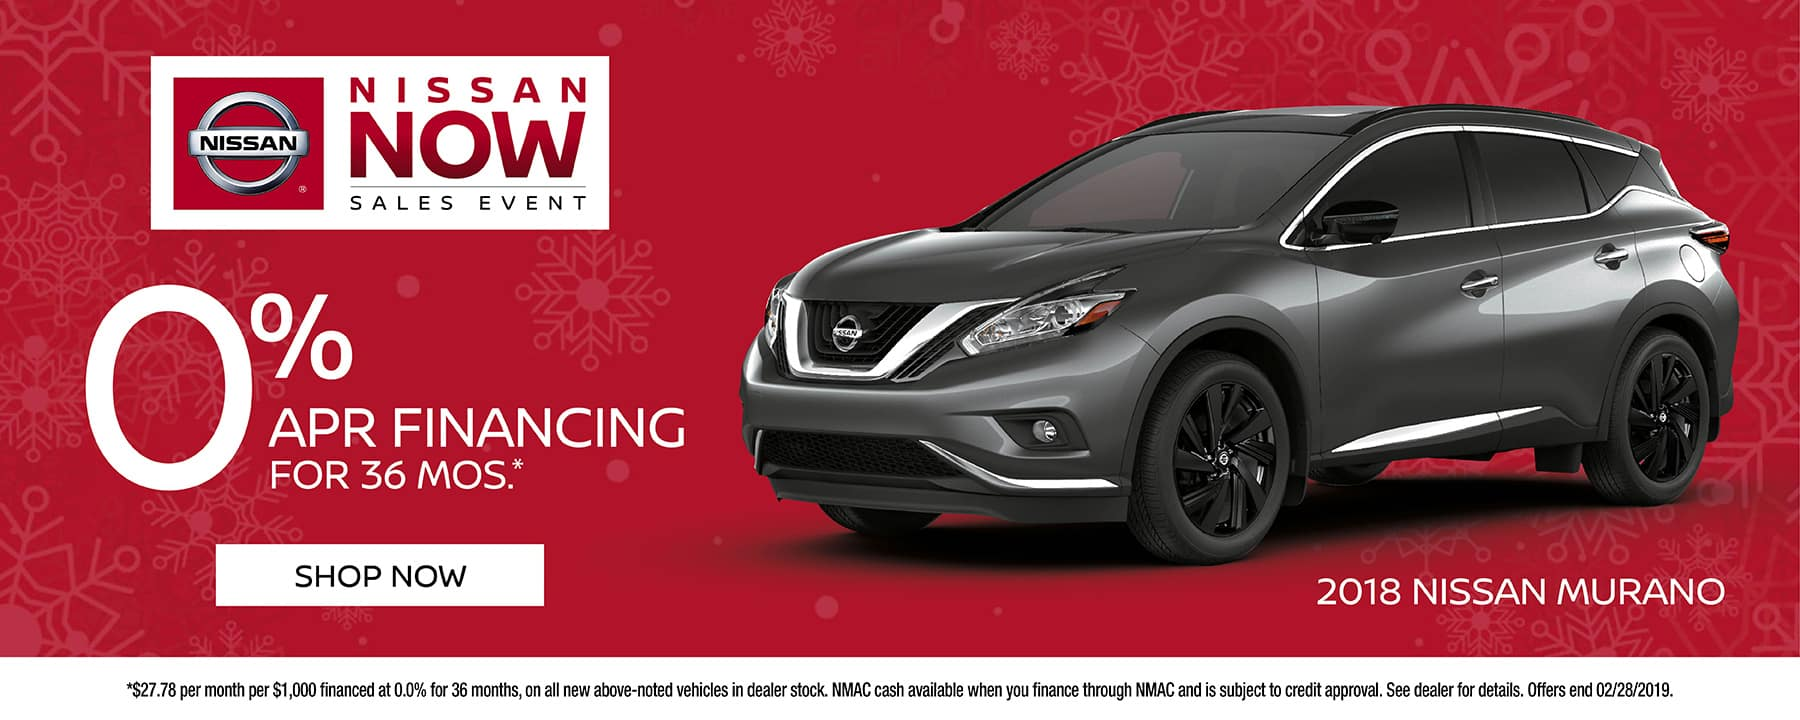 0% for 36 months available on 2019 Nissan Murano at Star Nissan!